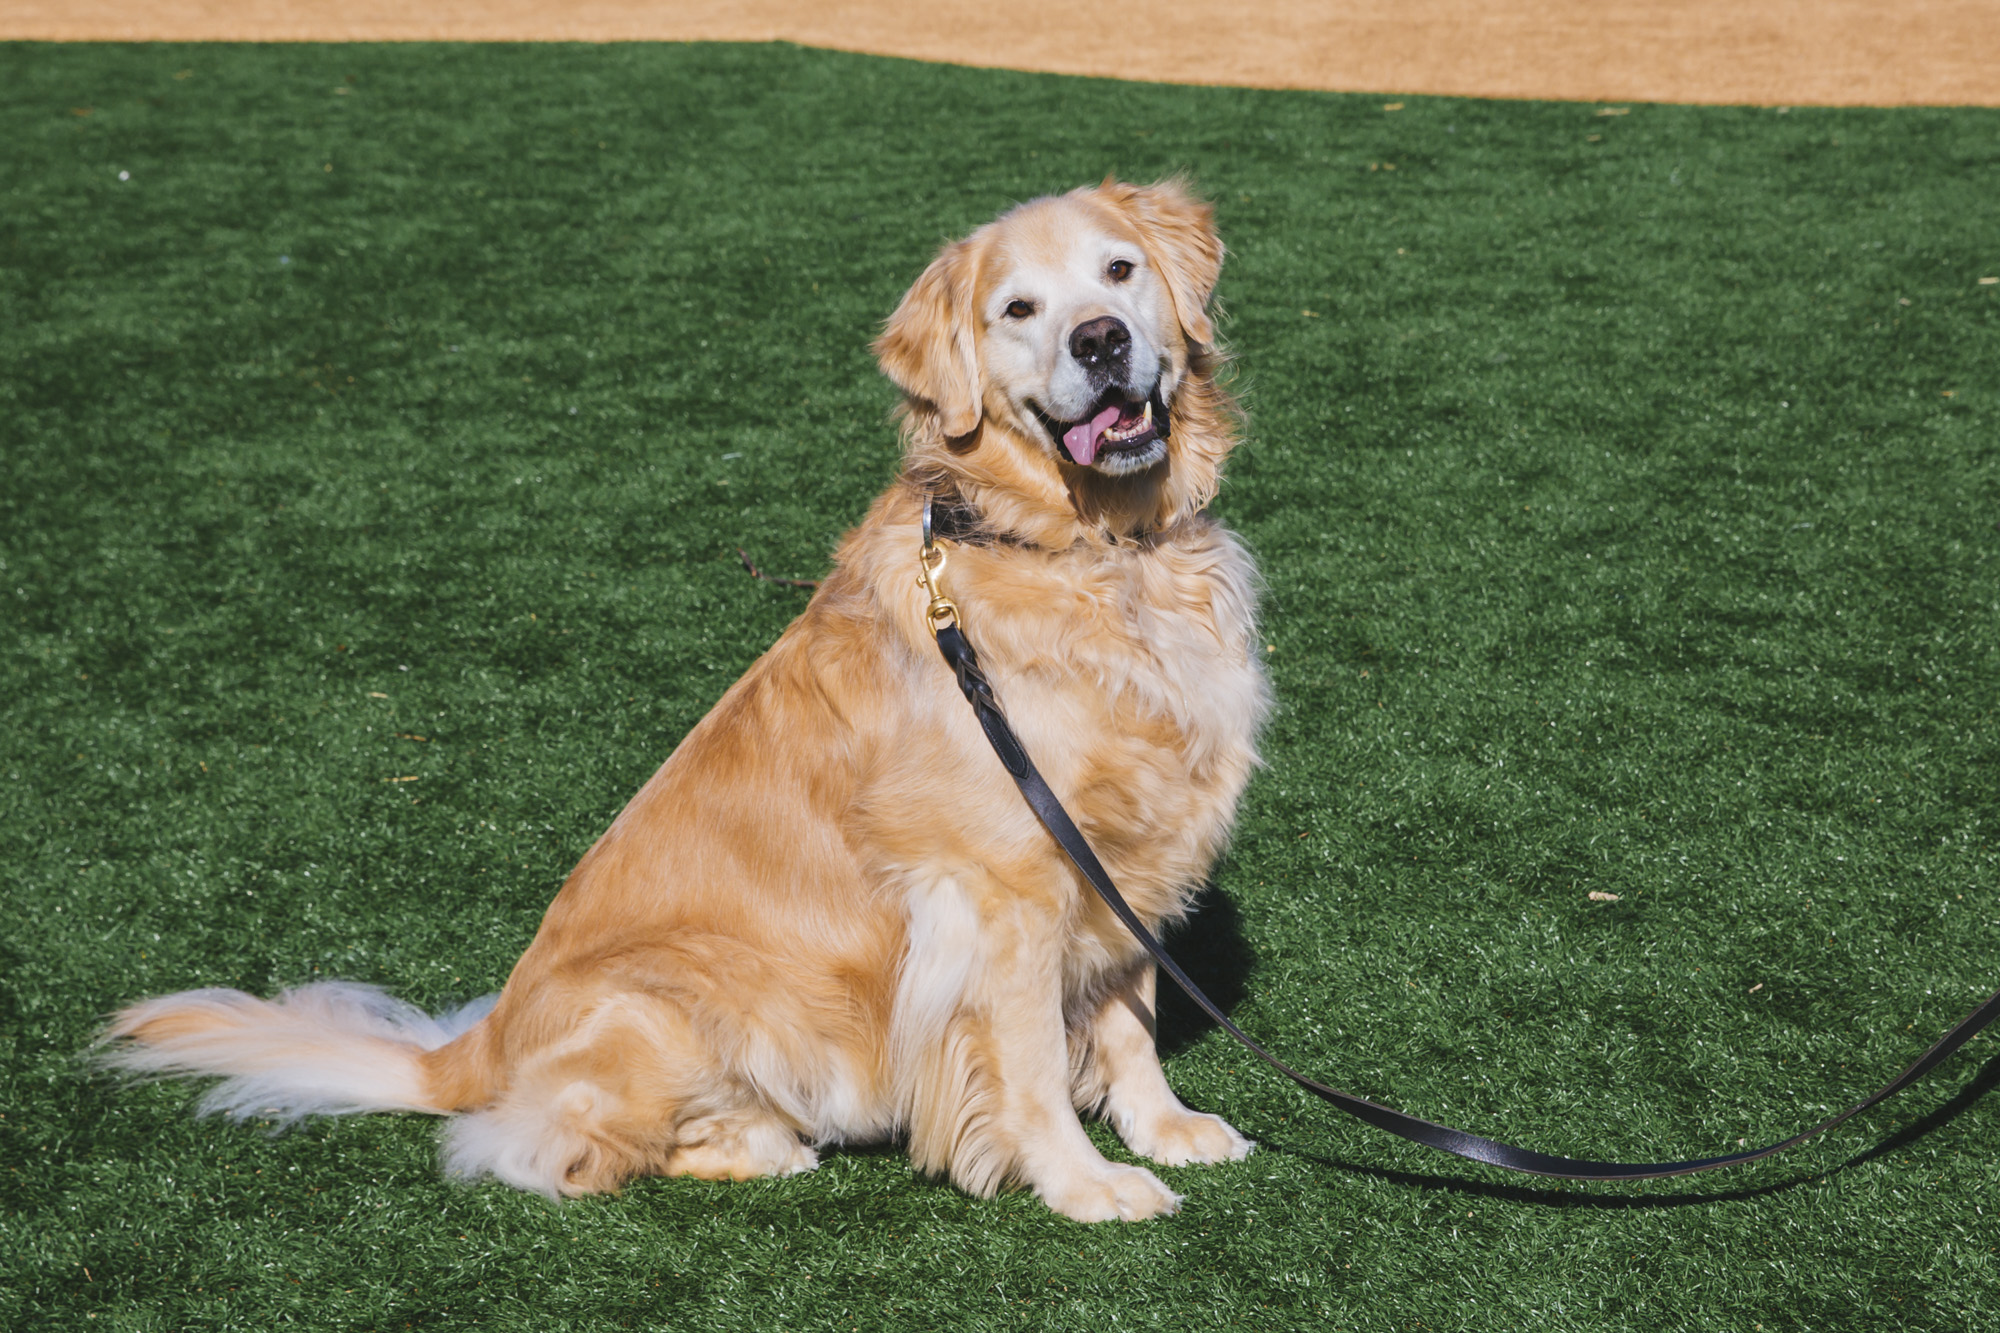 This weeks RUFFined Spotlight is Bailey the eight-year-old Golden Retriever! Bailey is a born and raised Washingtonian and is the grandson of a Westminster Sporting Group winner and has dabbled himself in dog shows, 4H and modeling. He likes treats (especially popcorn), cheese, freeze dried fish, snow, going to the dog park, chasing tennis balls and frisbees, dock diving and swimming, fetching socks for attention, supervising squirrels and back massages. He dislikes the bear at the Brown Bear Car Wash, has been known to give the stink eye to foster cats and small dogs that jump on the couch and being leashed on a beautiful beach.{ } The Seattle RUFFined Spotlight is a weekly profile of local pets living and loving life in the PNW. If you or someone you know has a pet you'd like featured, email us at hello@seattlerefined.com or tag #SeattleRUFFined and your furbaby could be the next spotlighted! (Image: Sunita Martini / Seattle Refined).